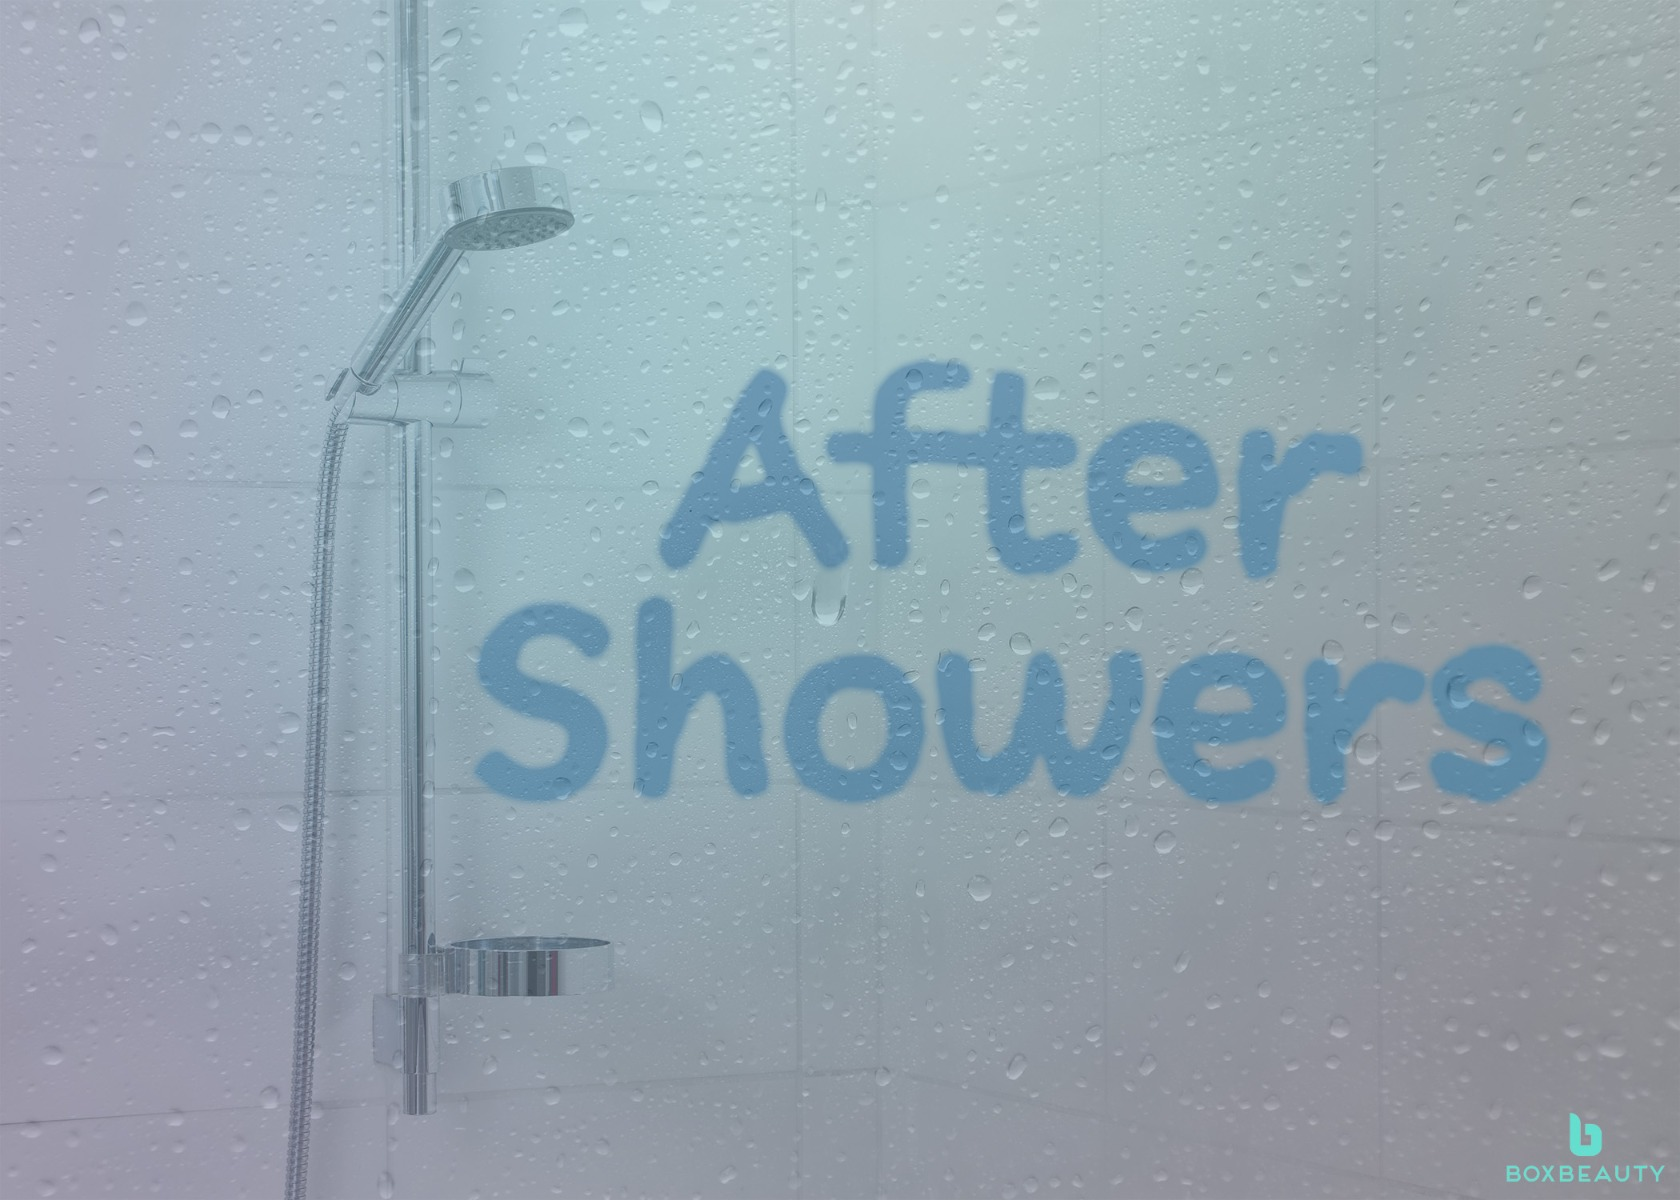 After Showers